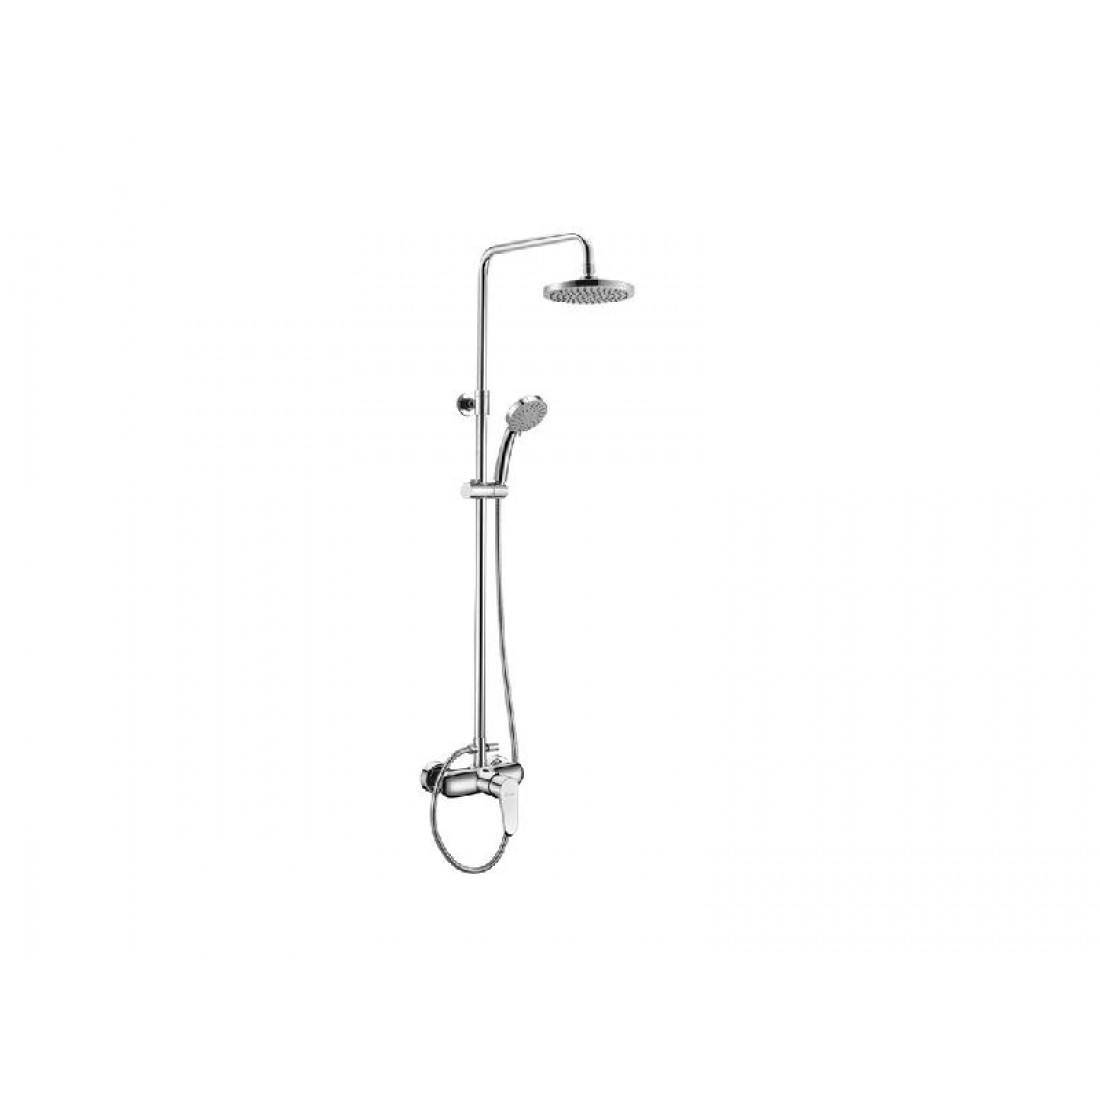 Karag Praxis ZOE 7938B Faucet Fixed Shower Chrome Zoe